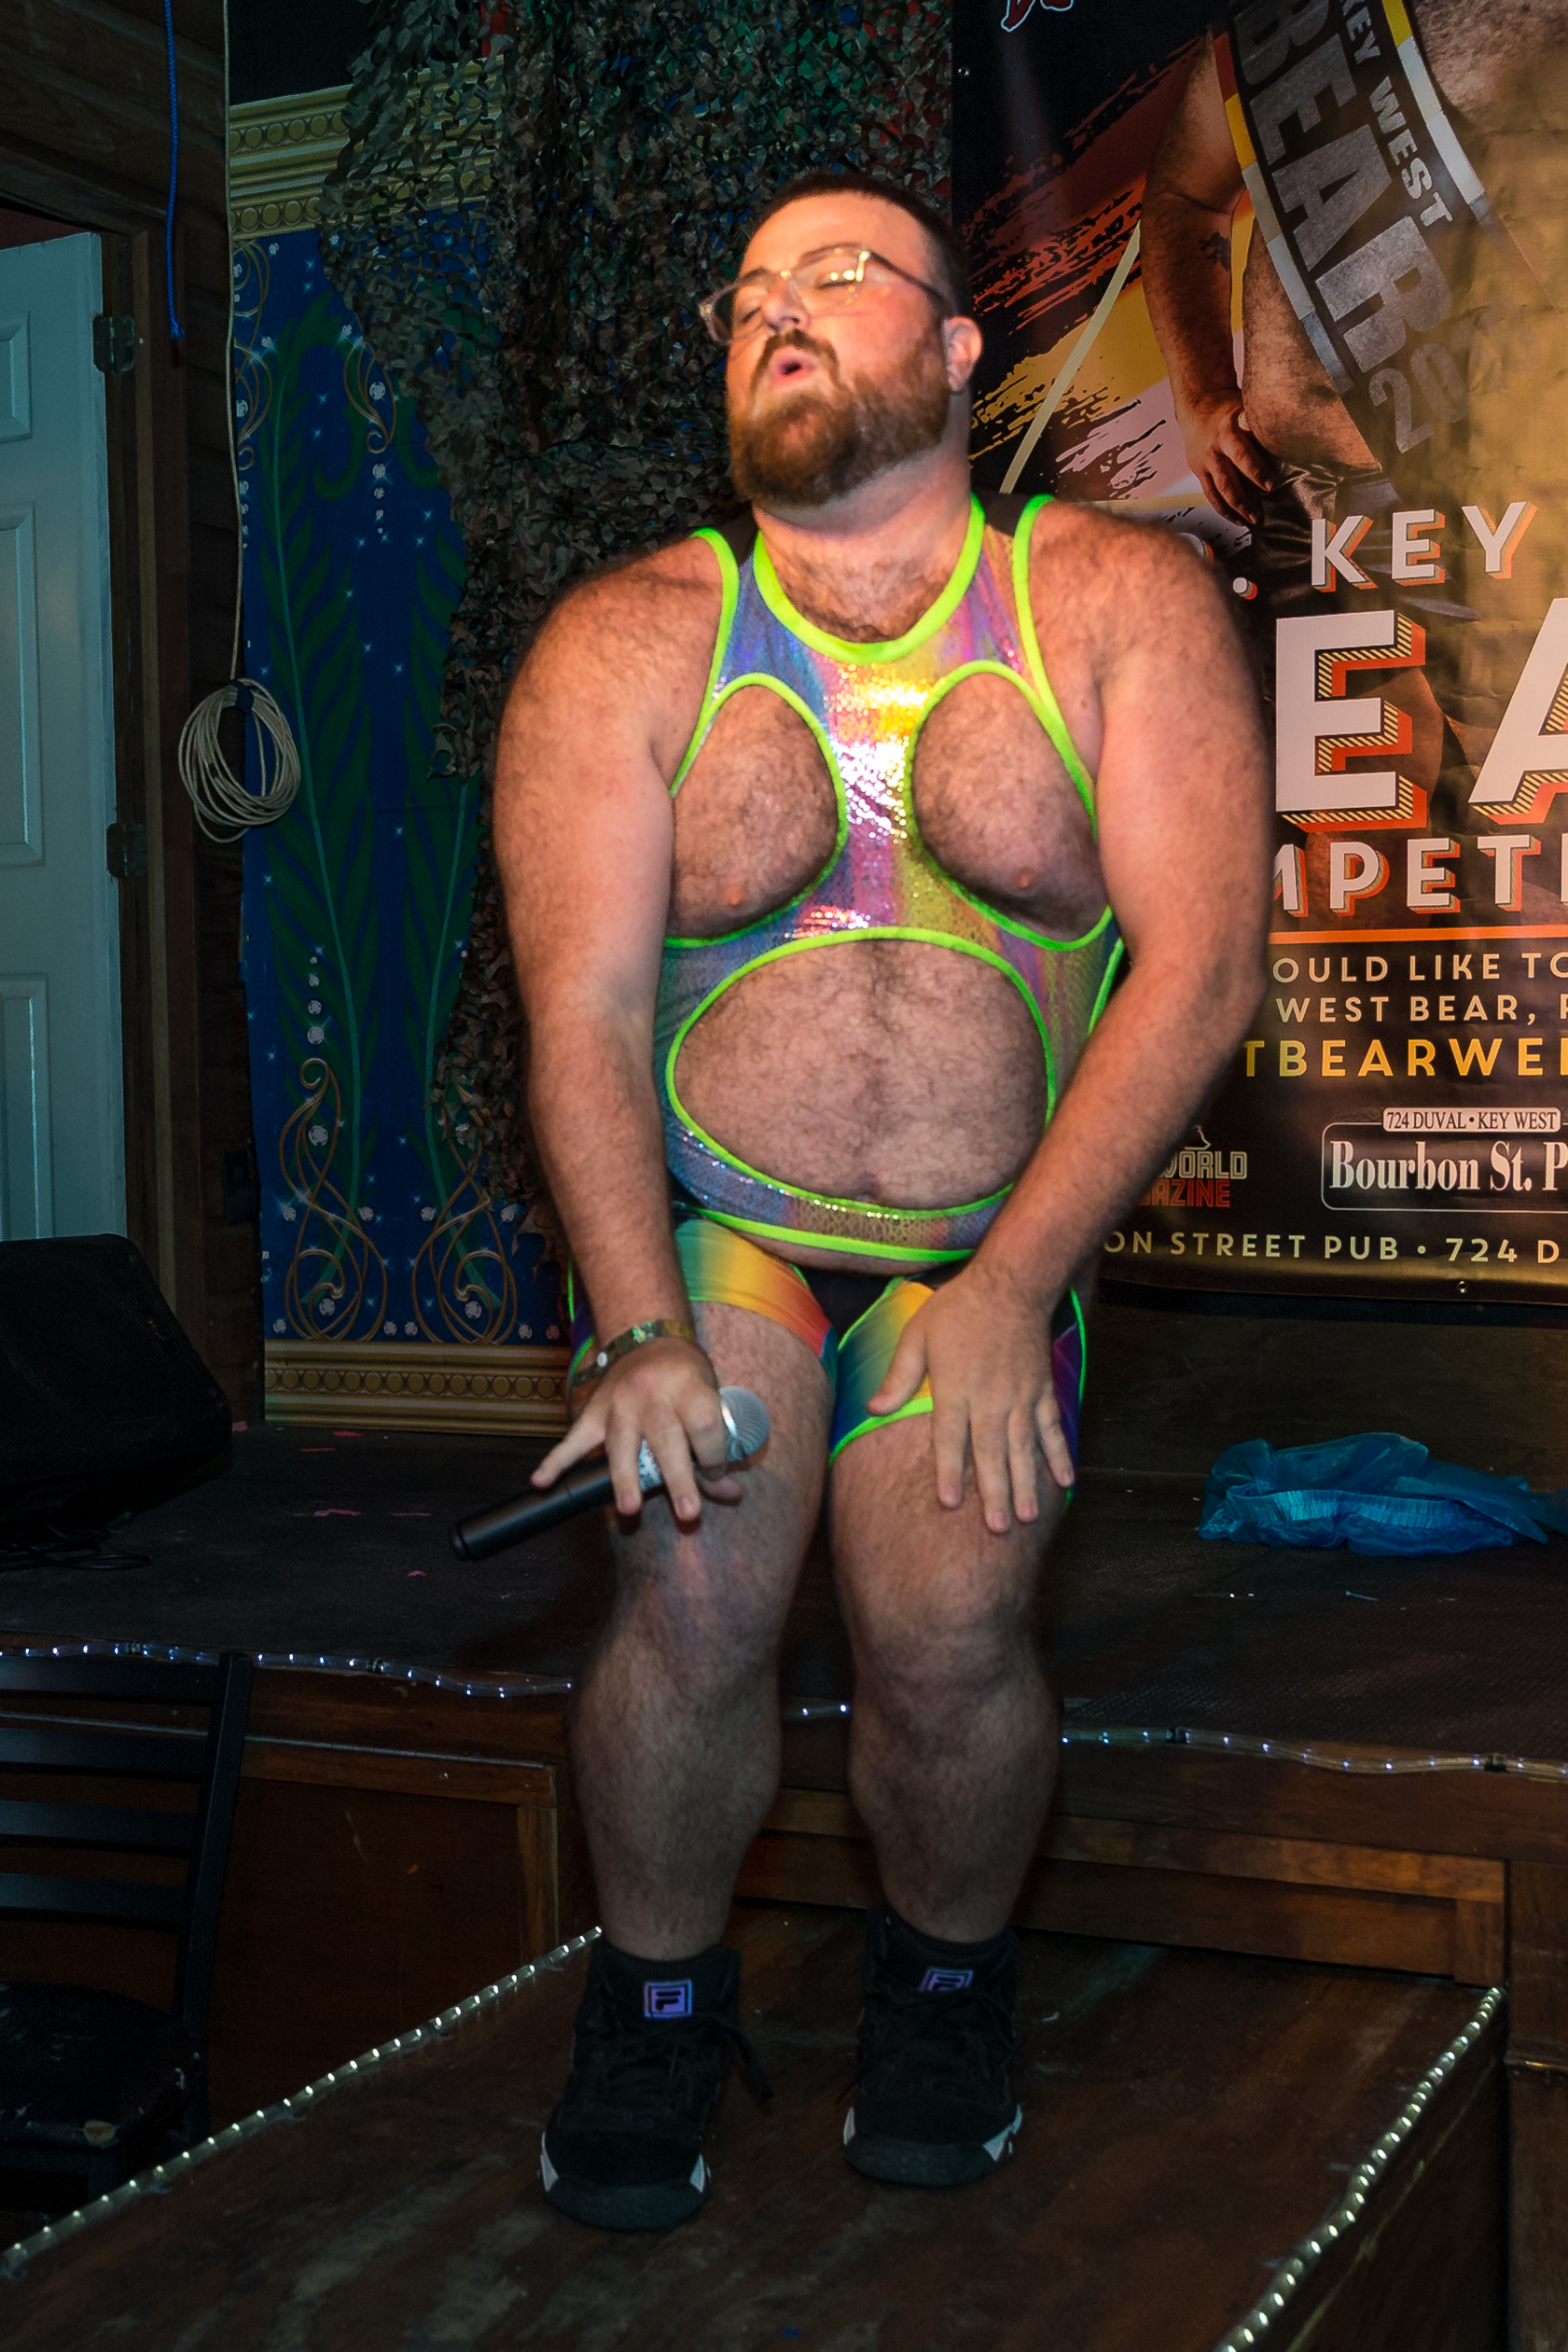 KWBW Mr.Key West Bear 2019 NWM-2455